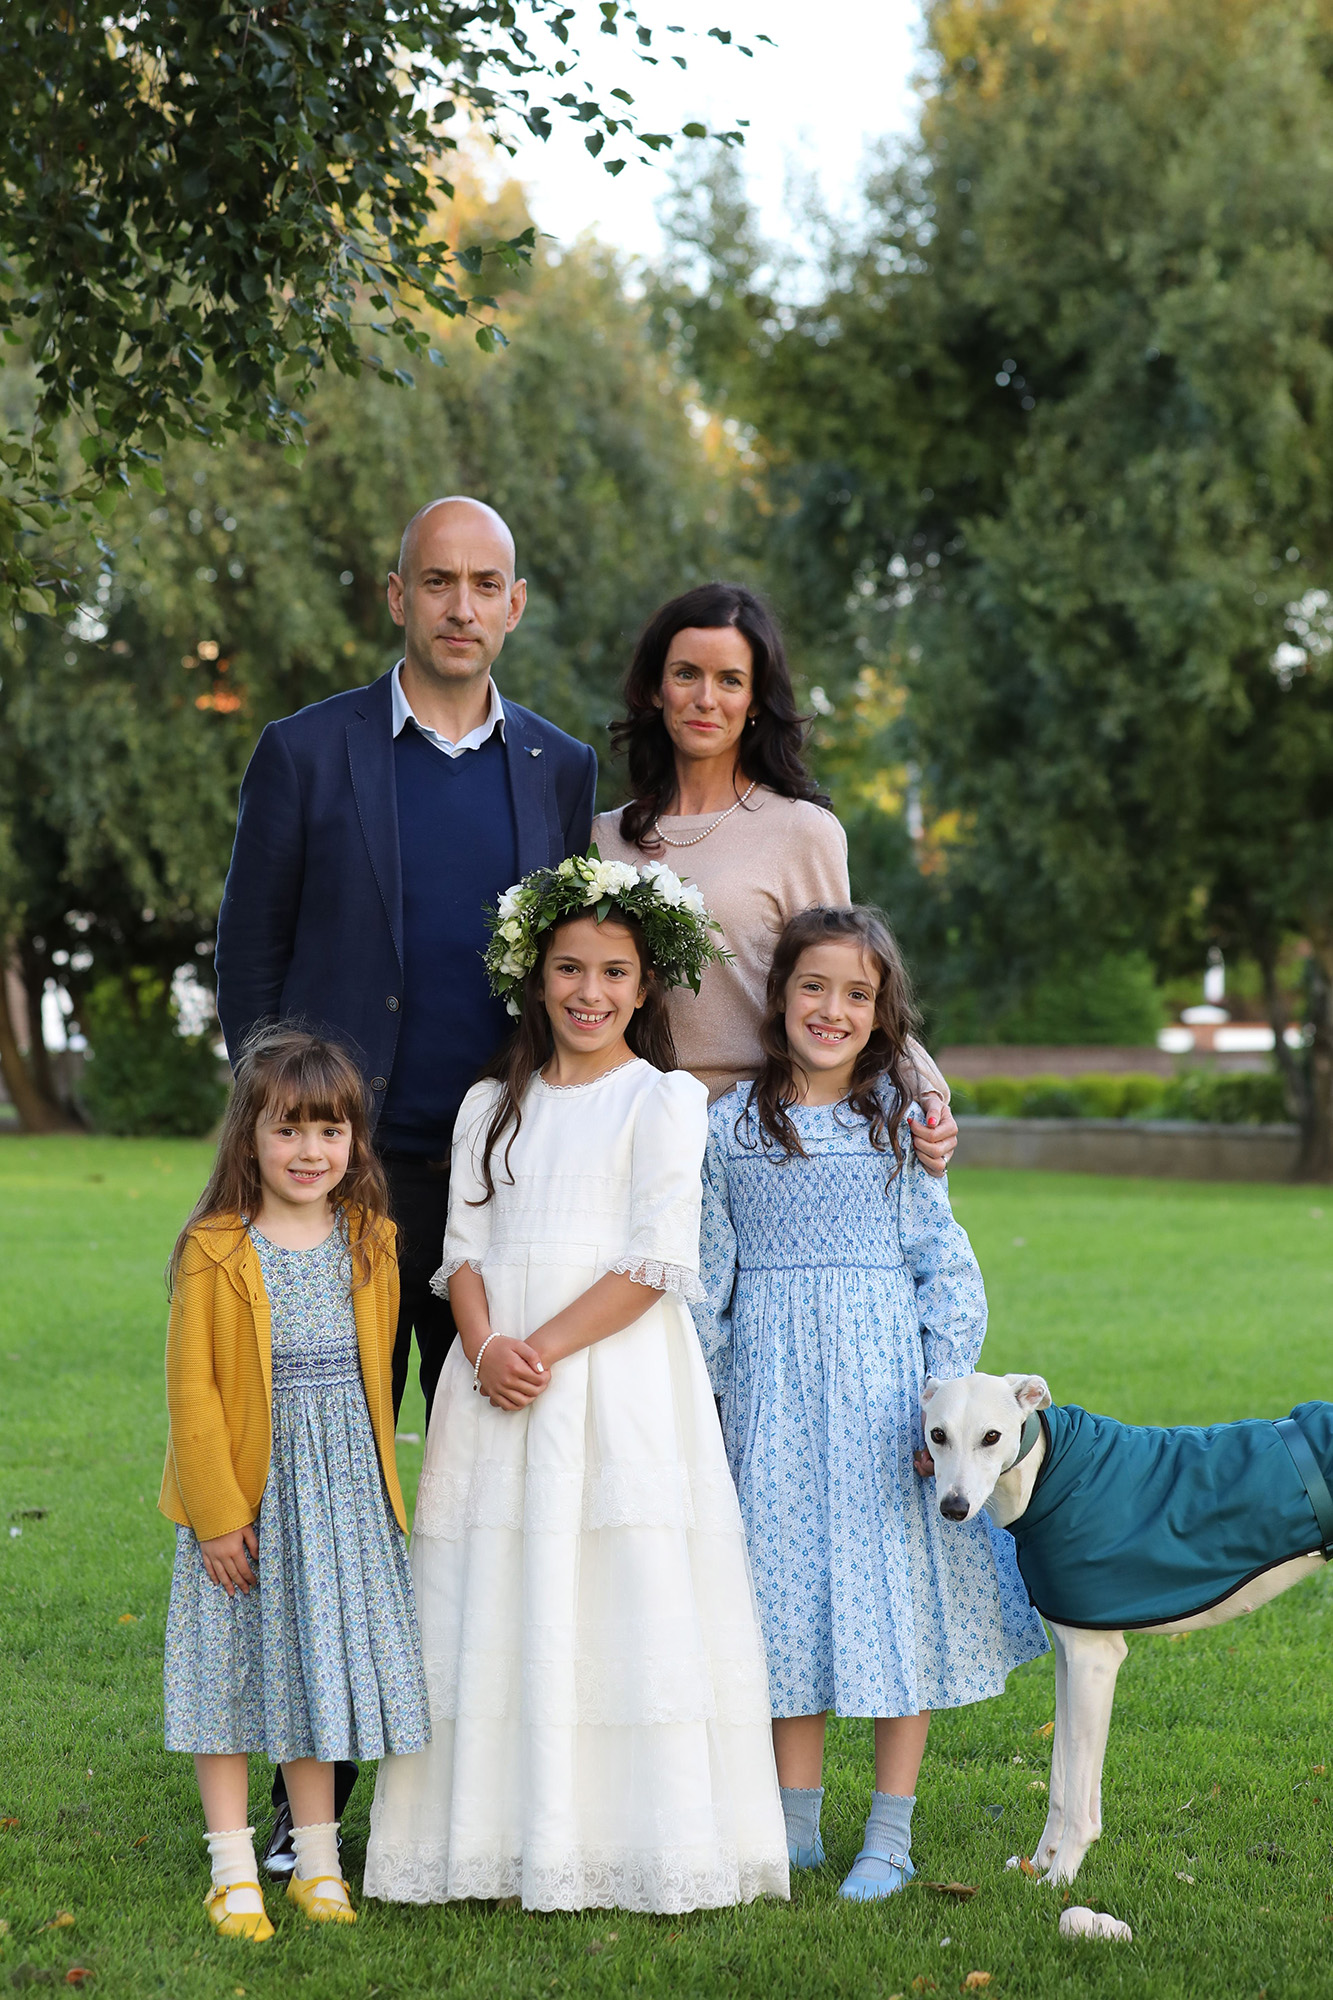 Communion girl with her family and dog by Jenny Callanan Photography